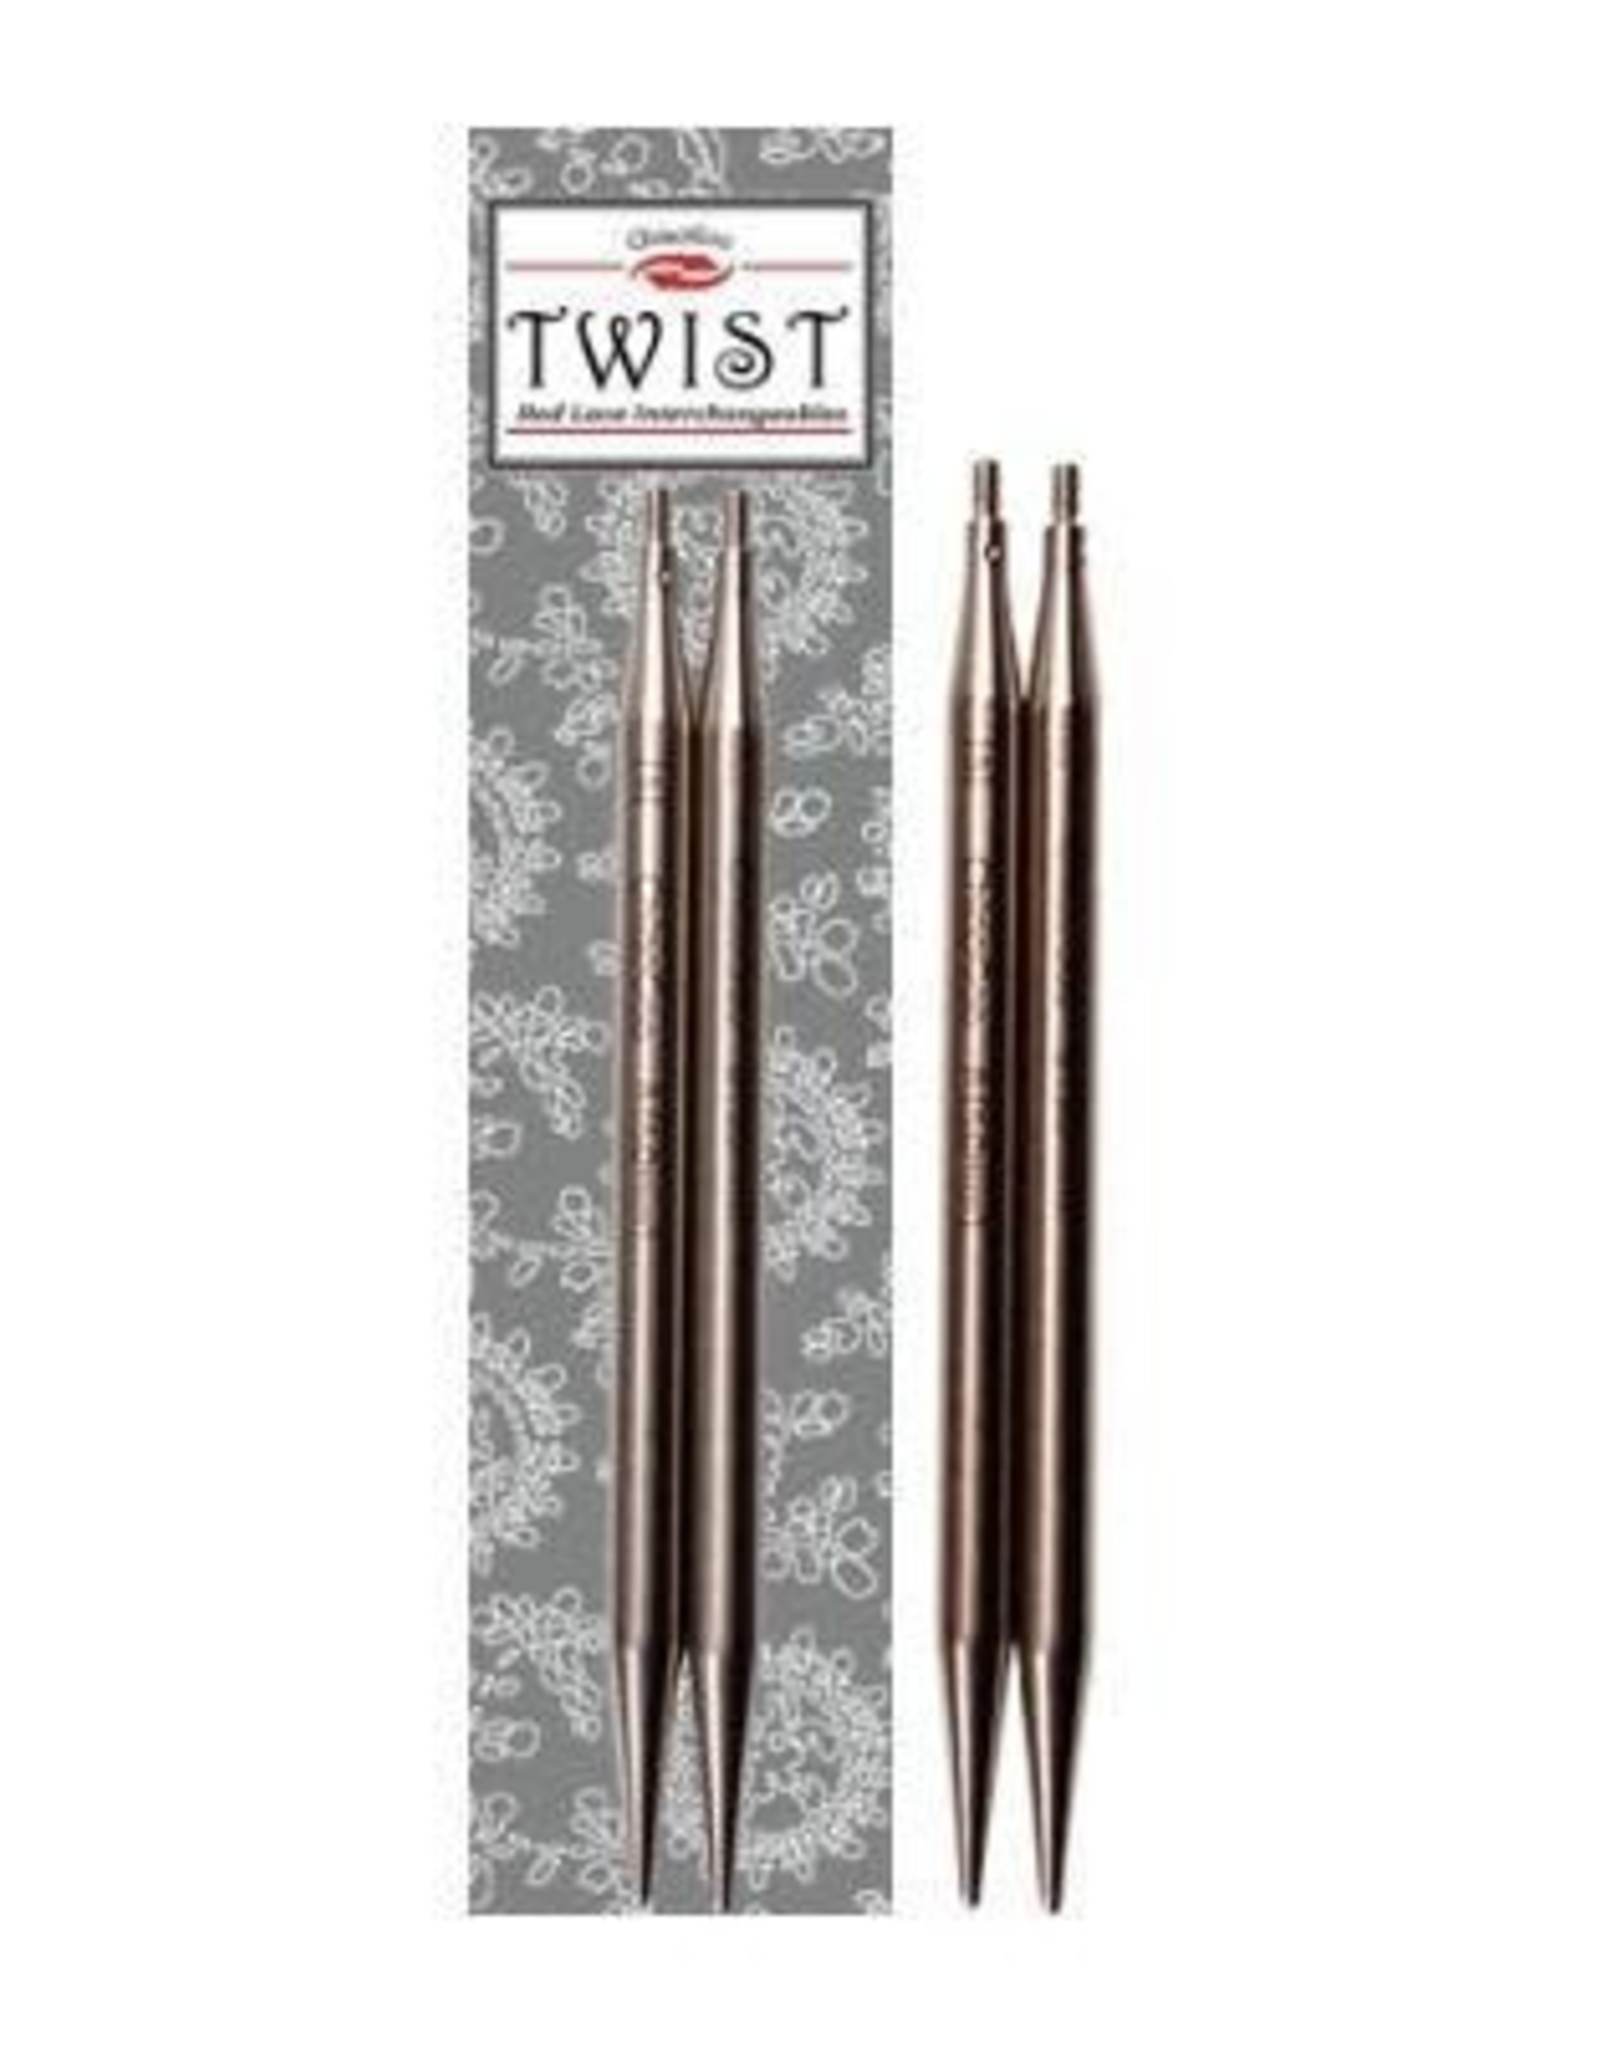 Chiao Goo Interchangeable Tips TWIST (steel)